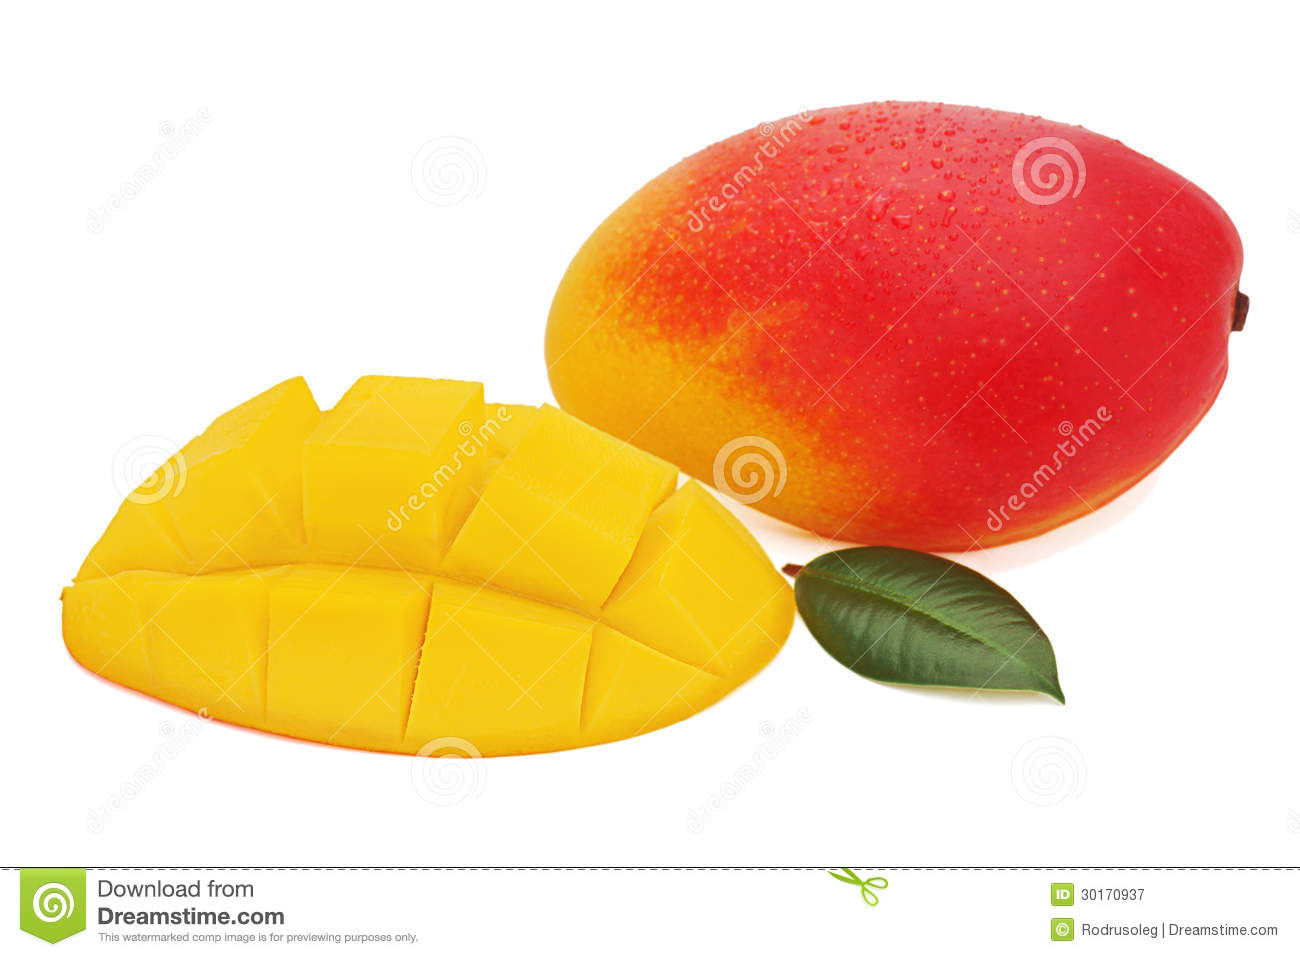 how to cut mango fruit